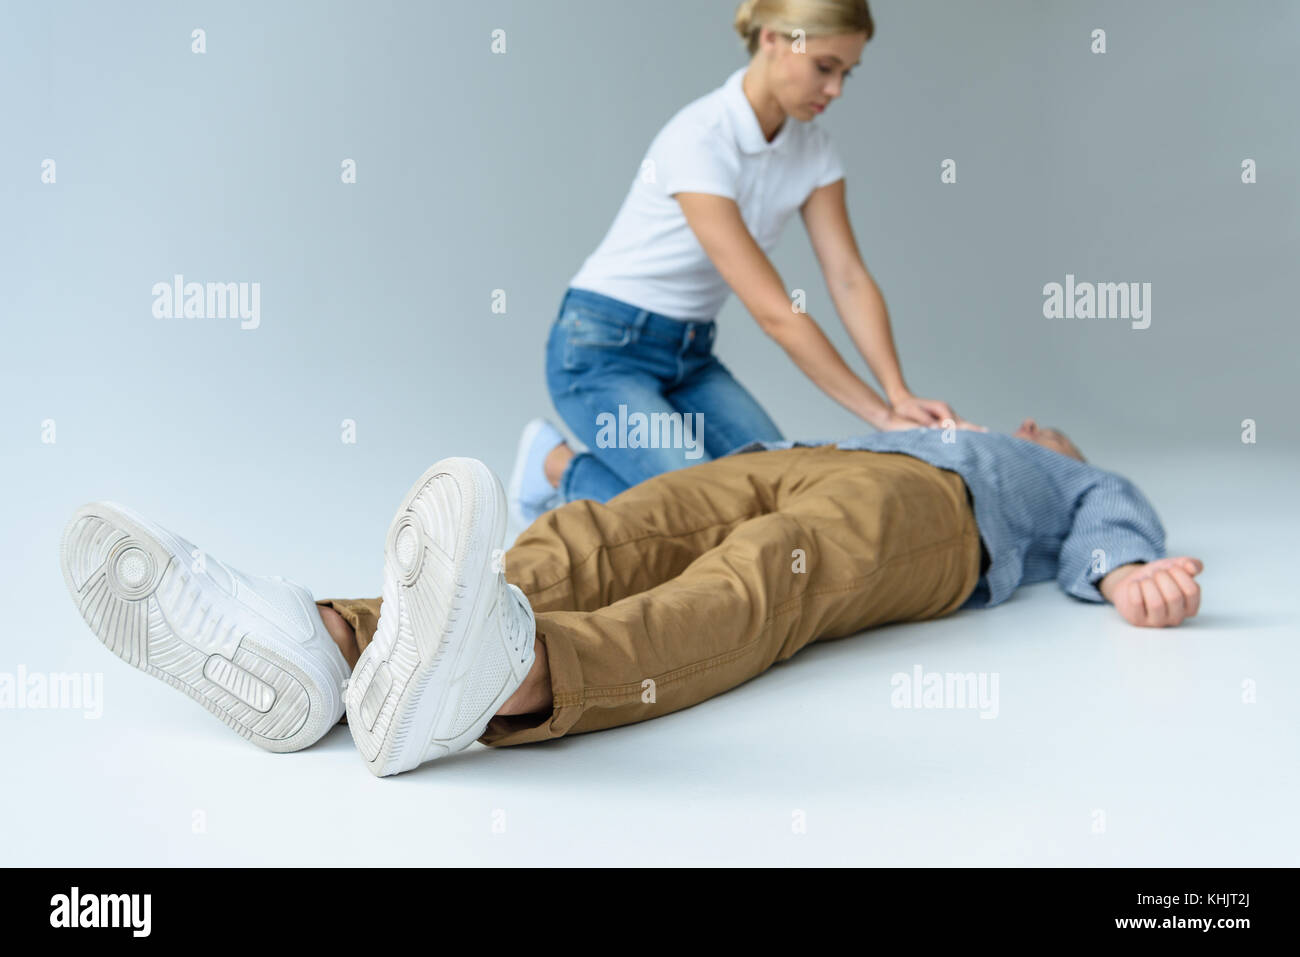 first aid training - Stock Image